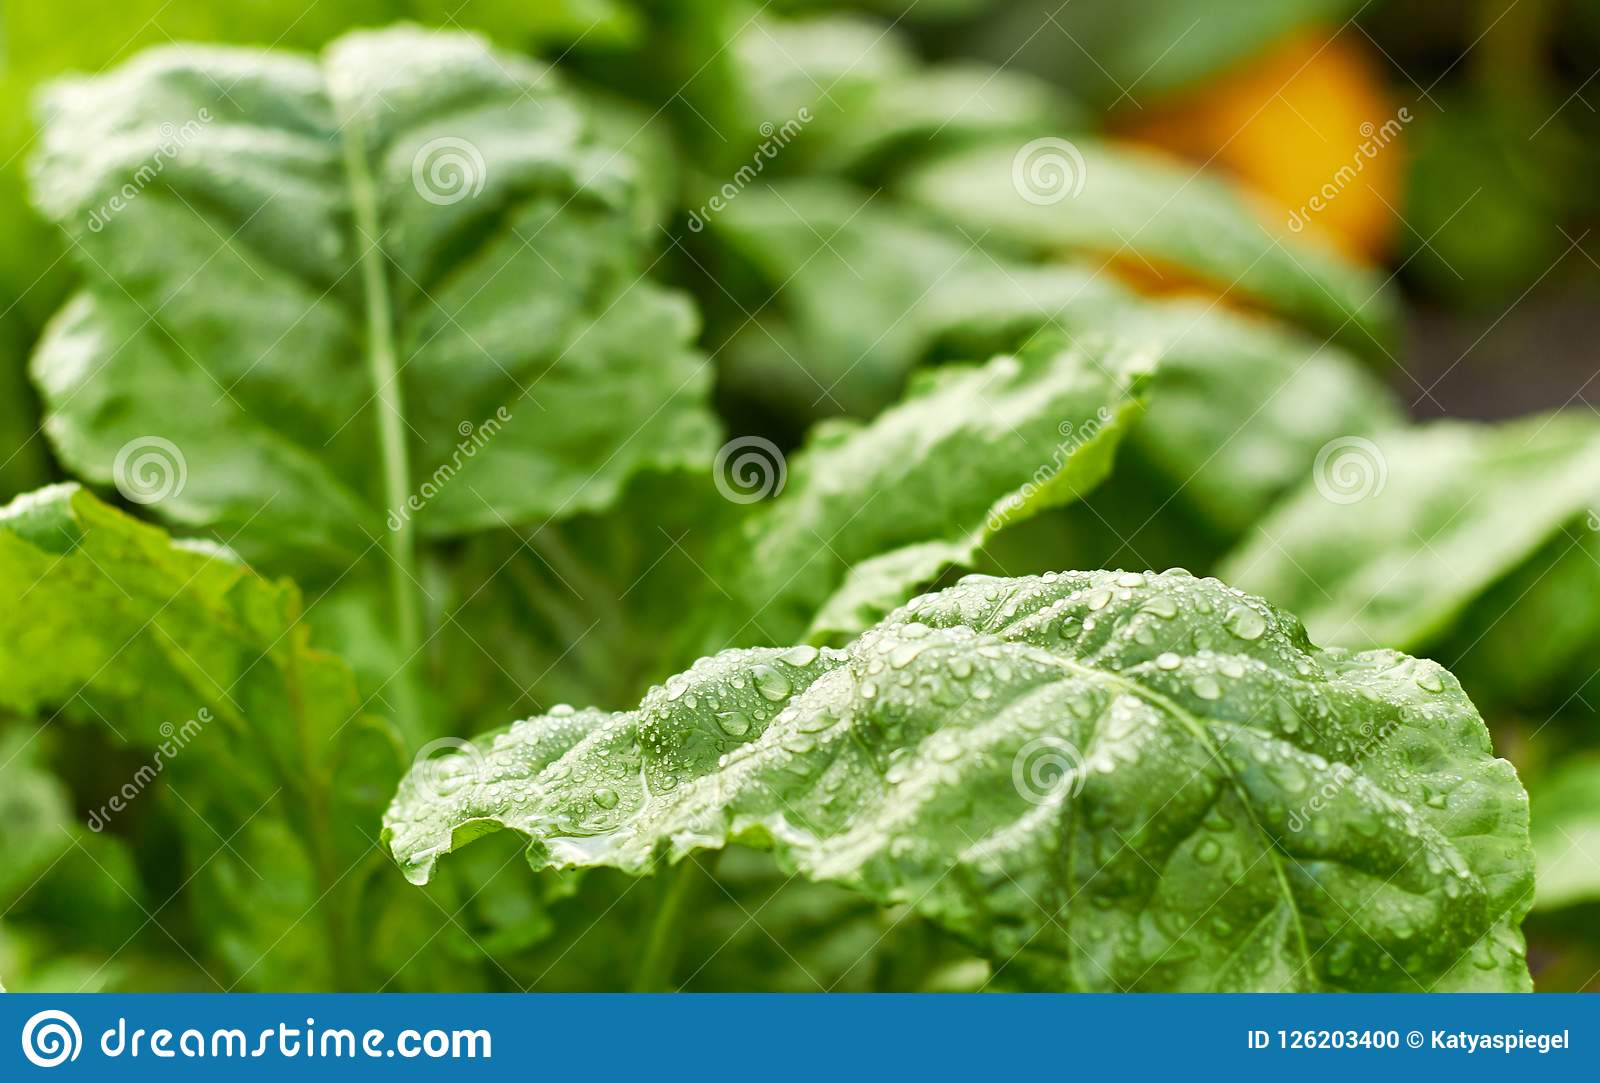 Fresh wet leaves of green beet plant and pumpkin on bed at background,